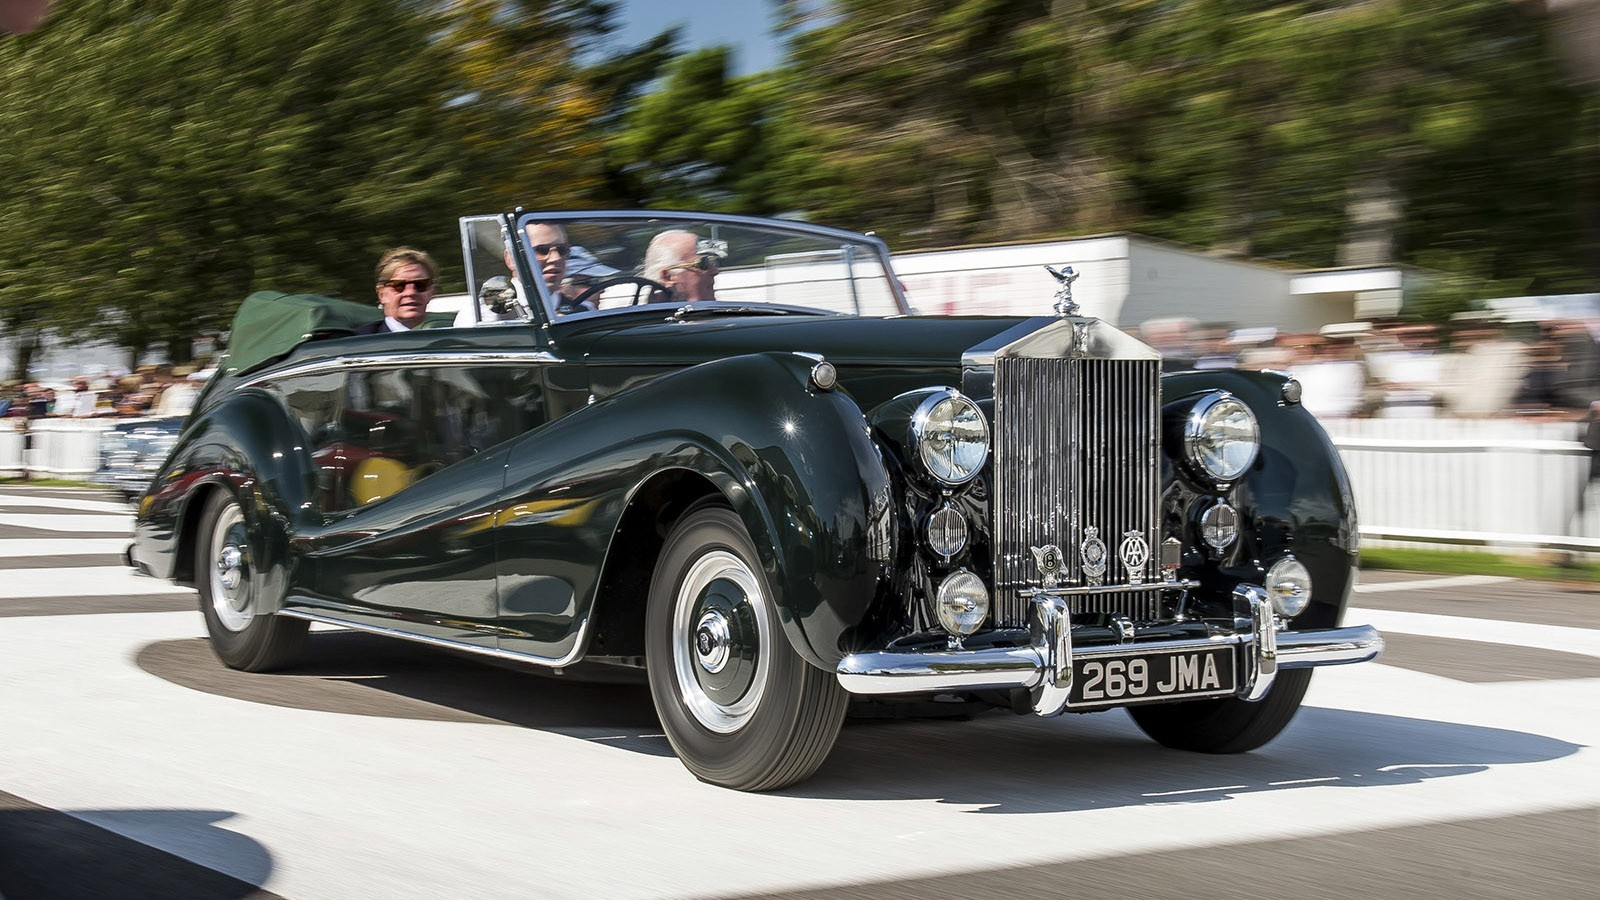 Goodwood Revival for Rolls-Royce Motor Cars Photo: James Lipman